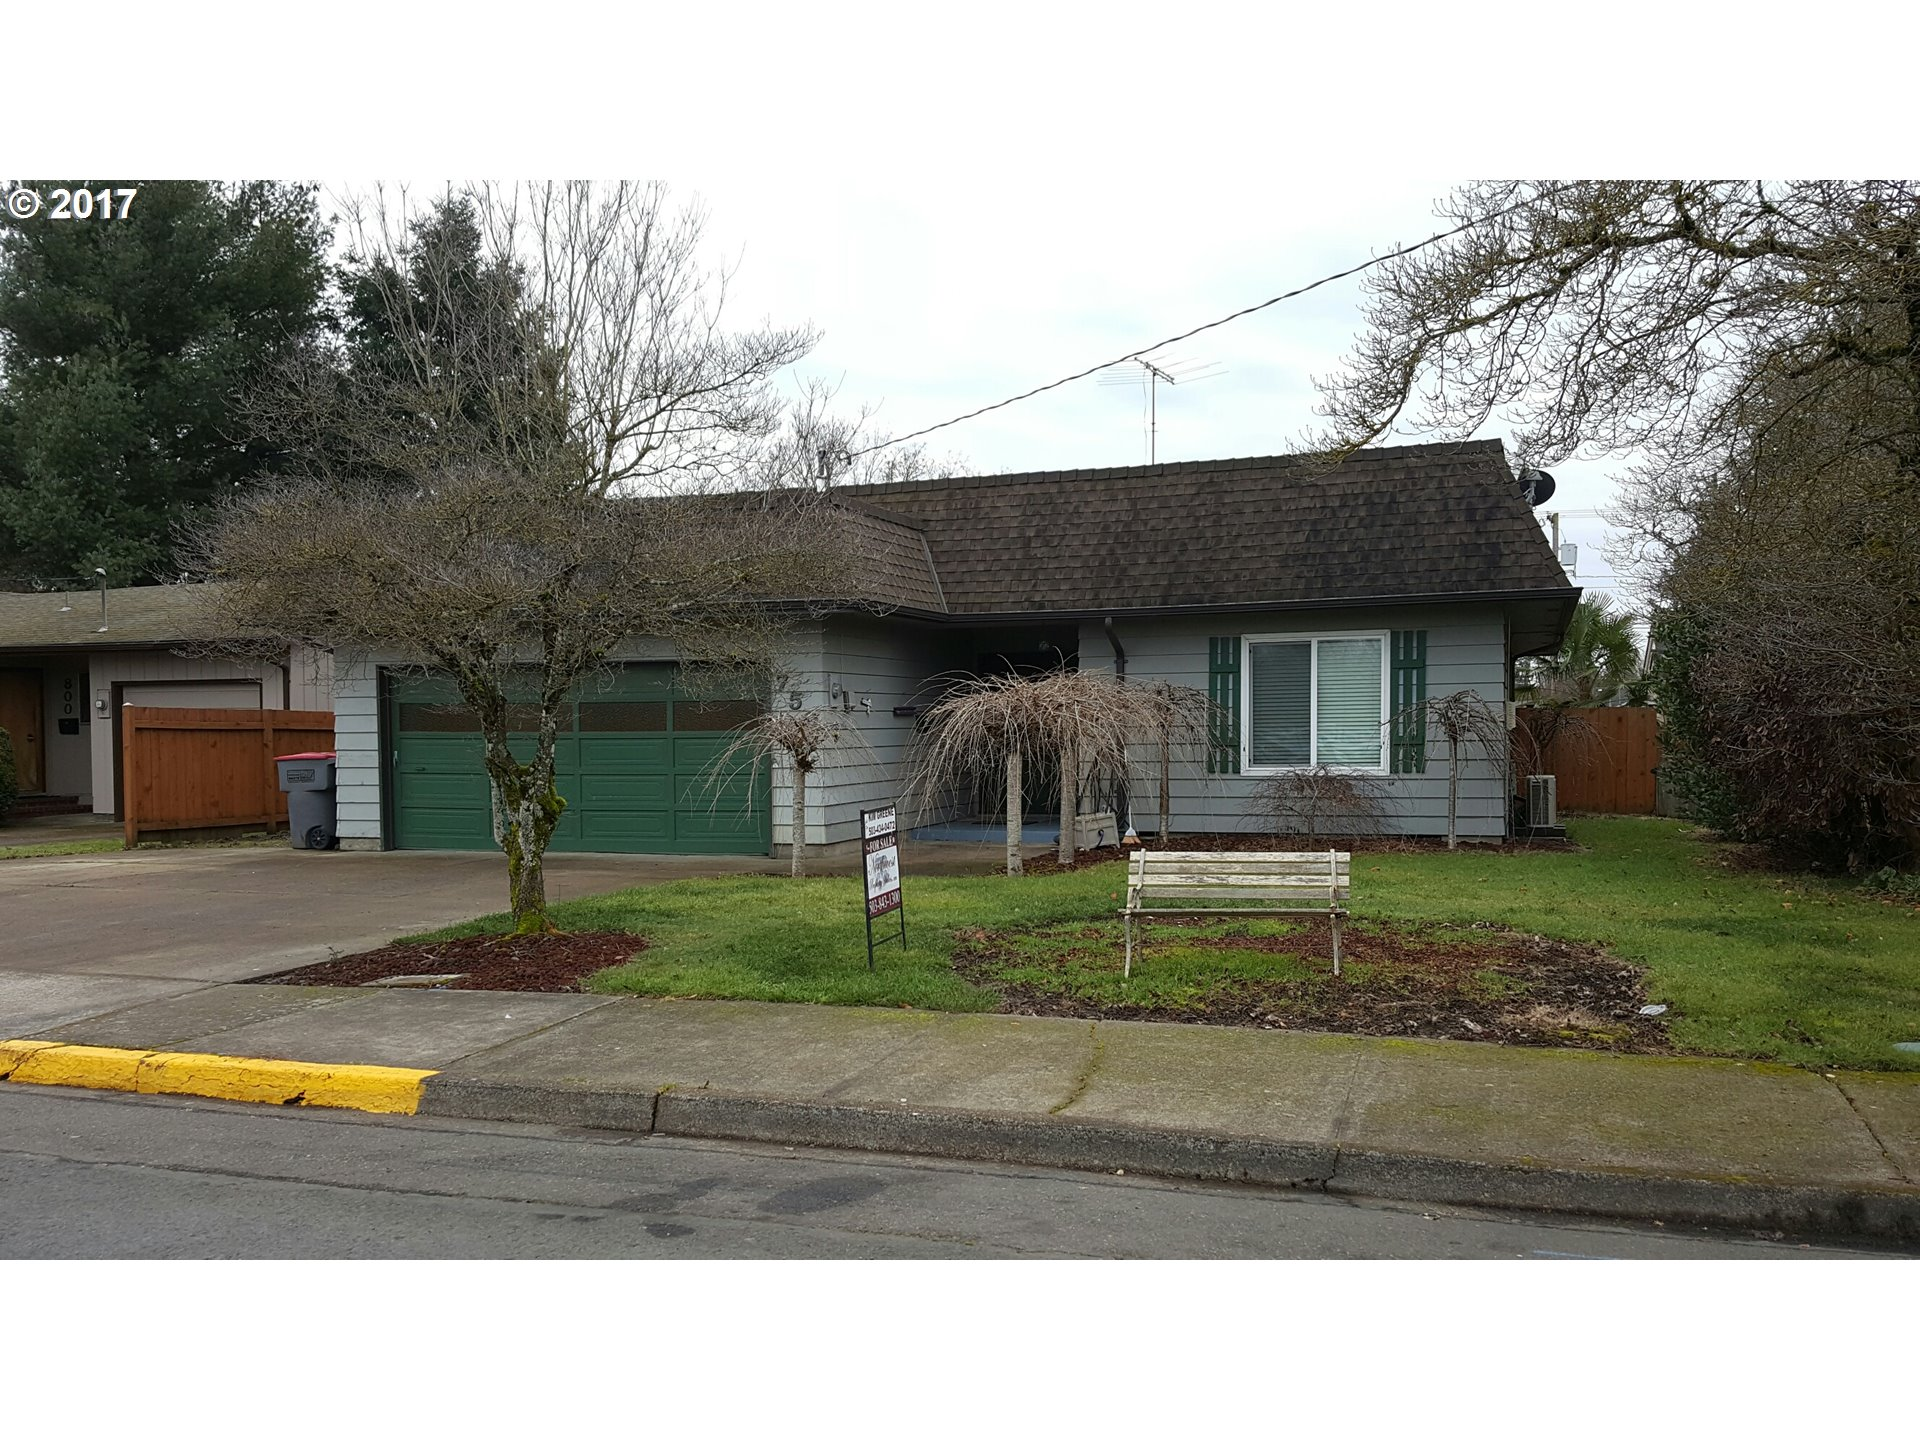 750 NE 15TH ST, Mcminnville OR 97128